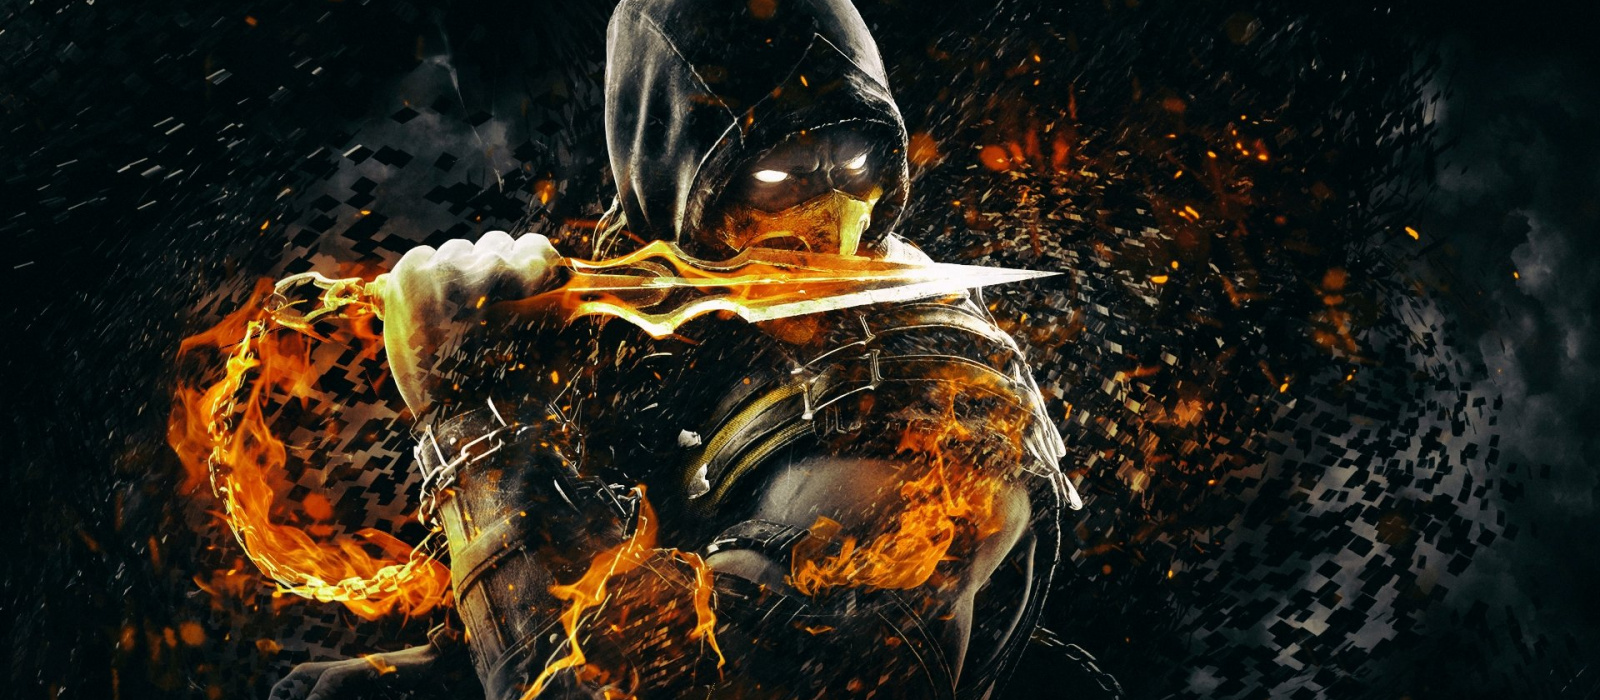 Strikes in Mortal Kombat 11 for PC on the keyboard: techniques, combos, styles, Fatality, Brutality, Fatal Blow